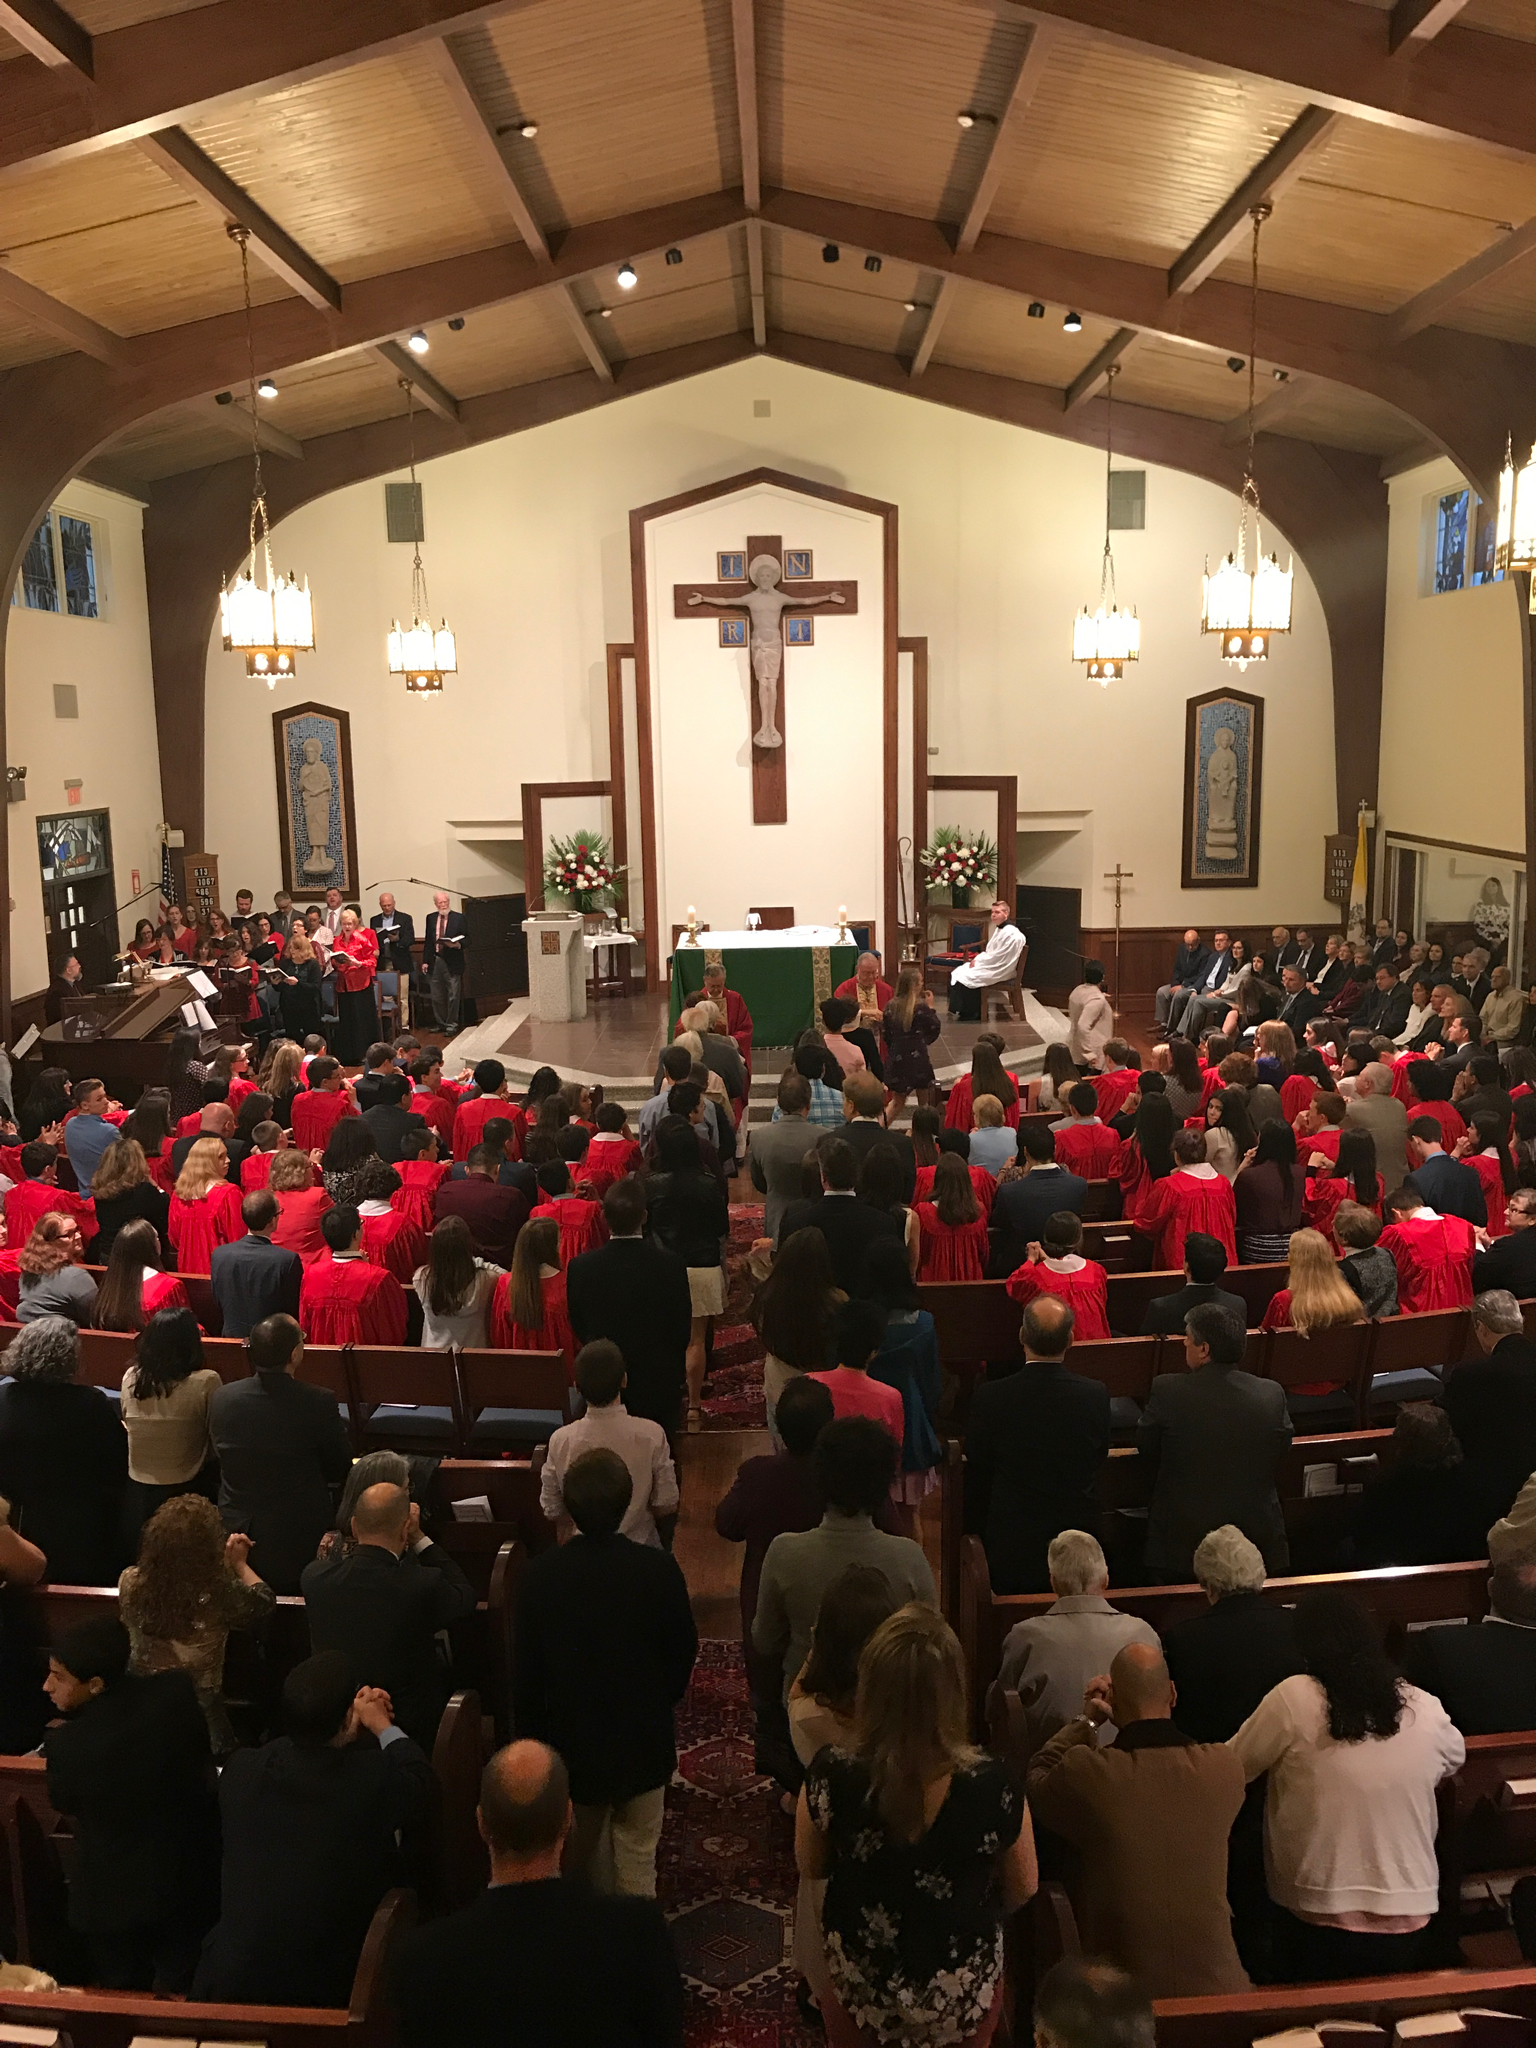 Pulsing Pews at Confirmation Mass